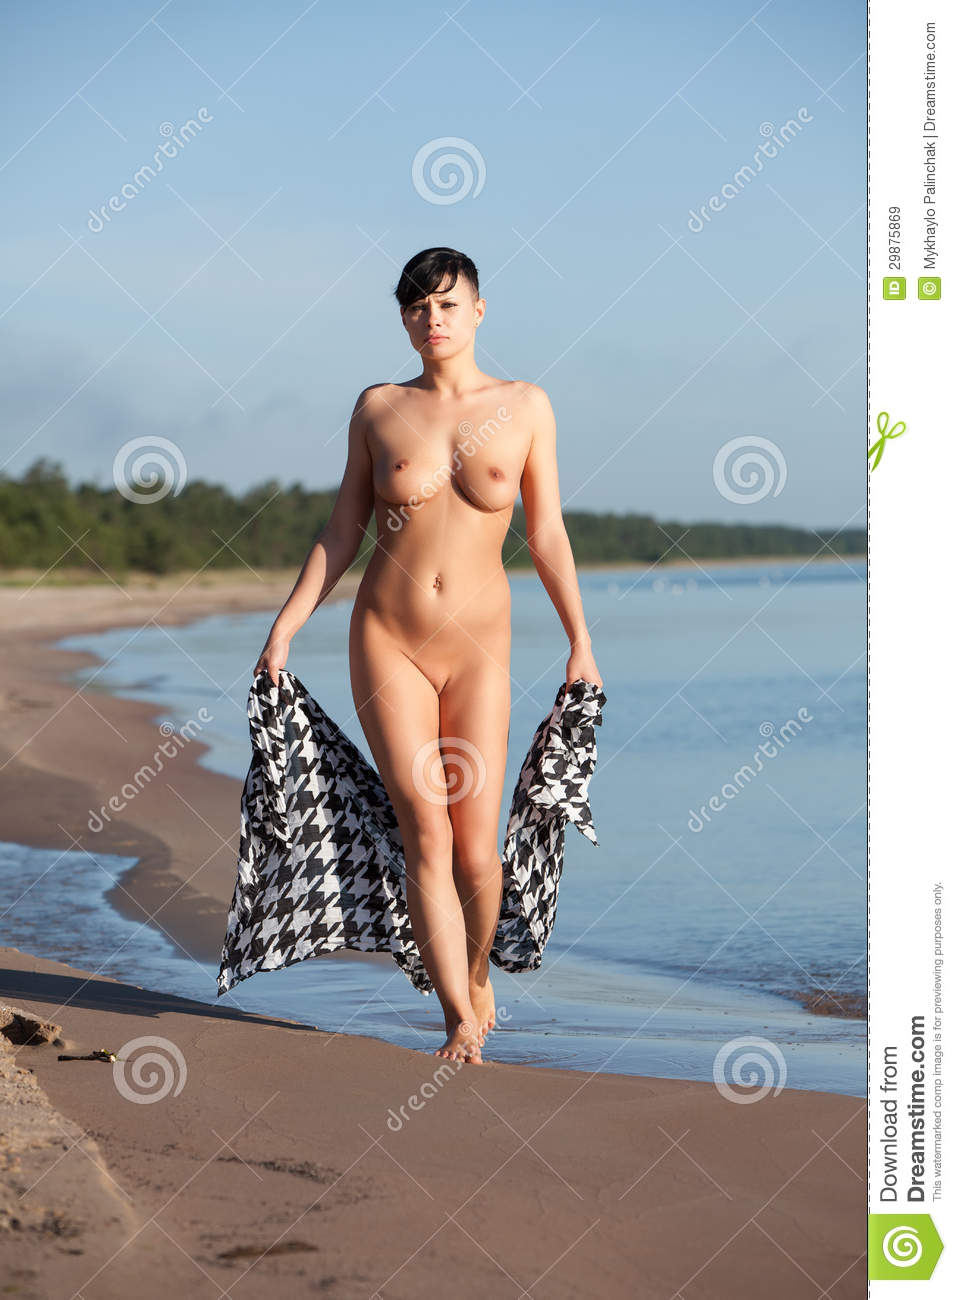 woman beach Naked